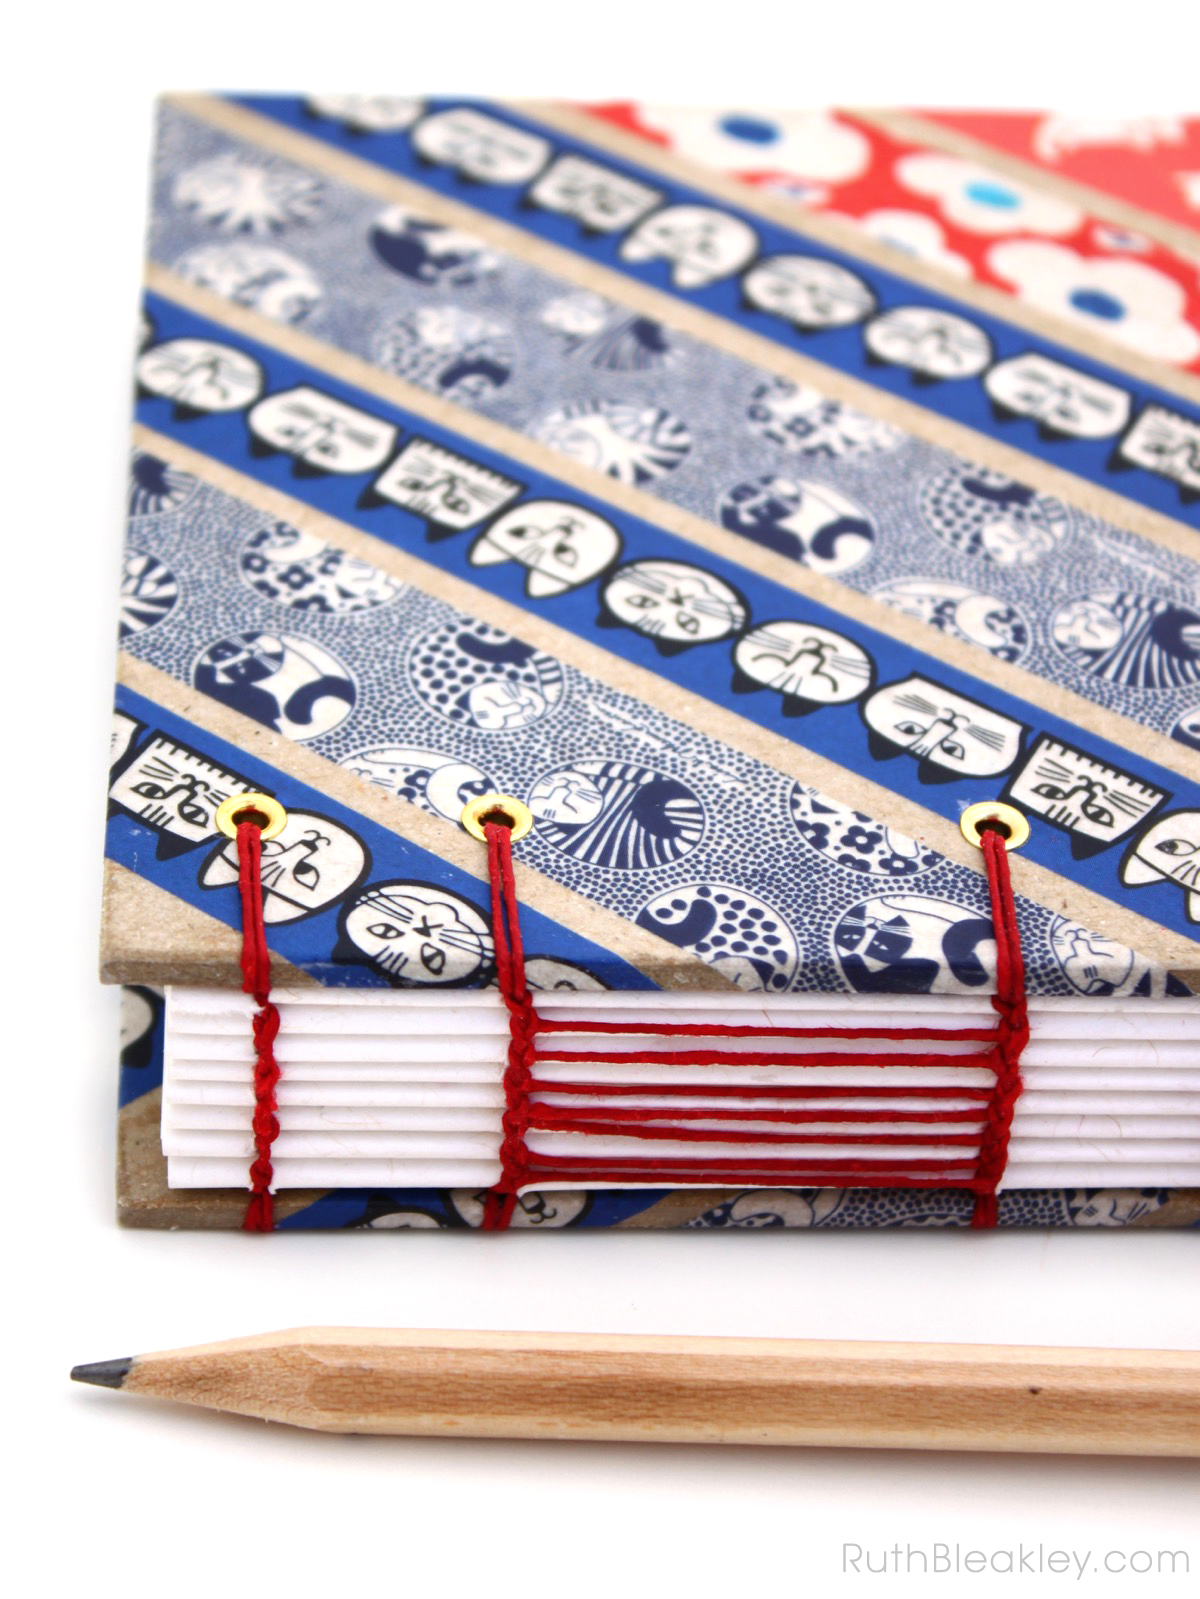 Blue and Red Cat Washi Tape Journal handmade by Ruth Bleakley - 3